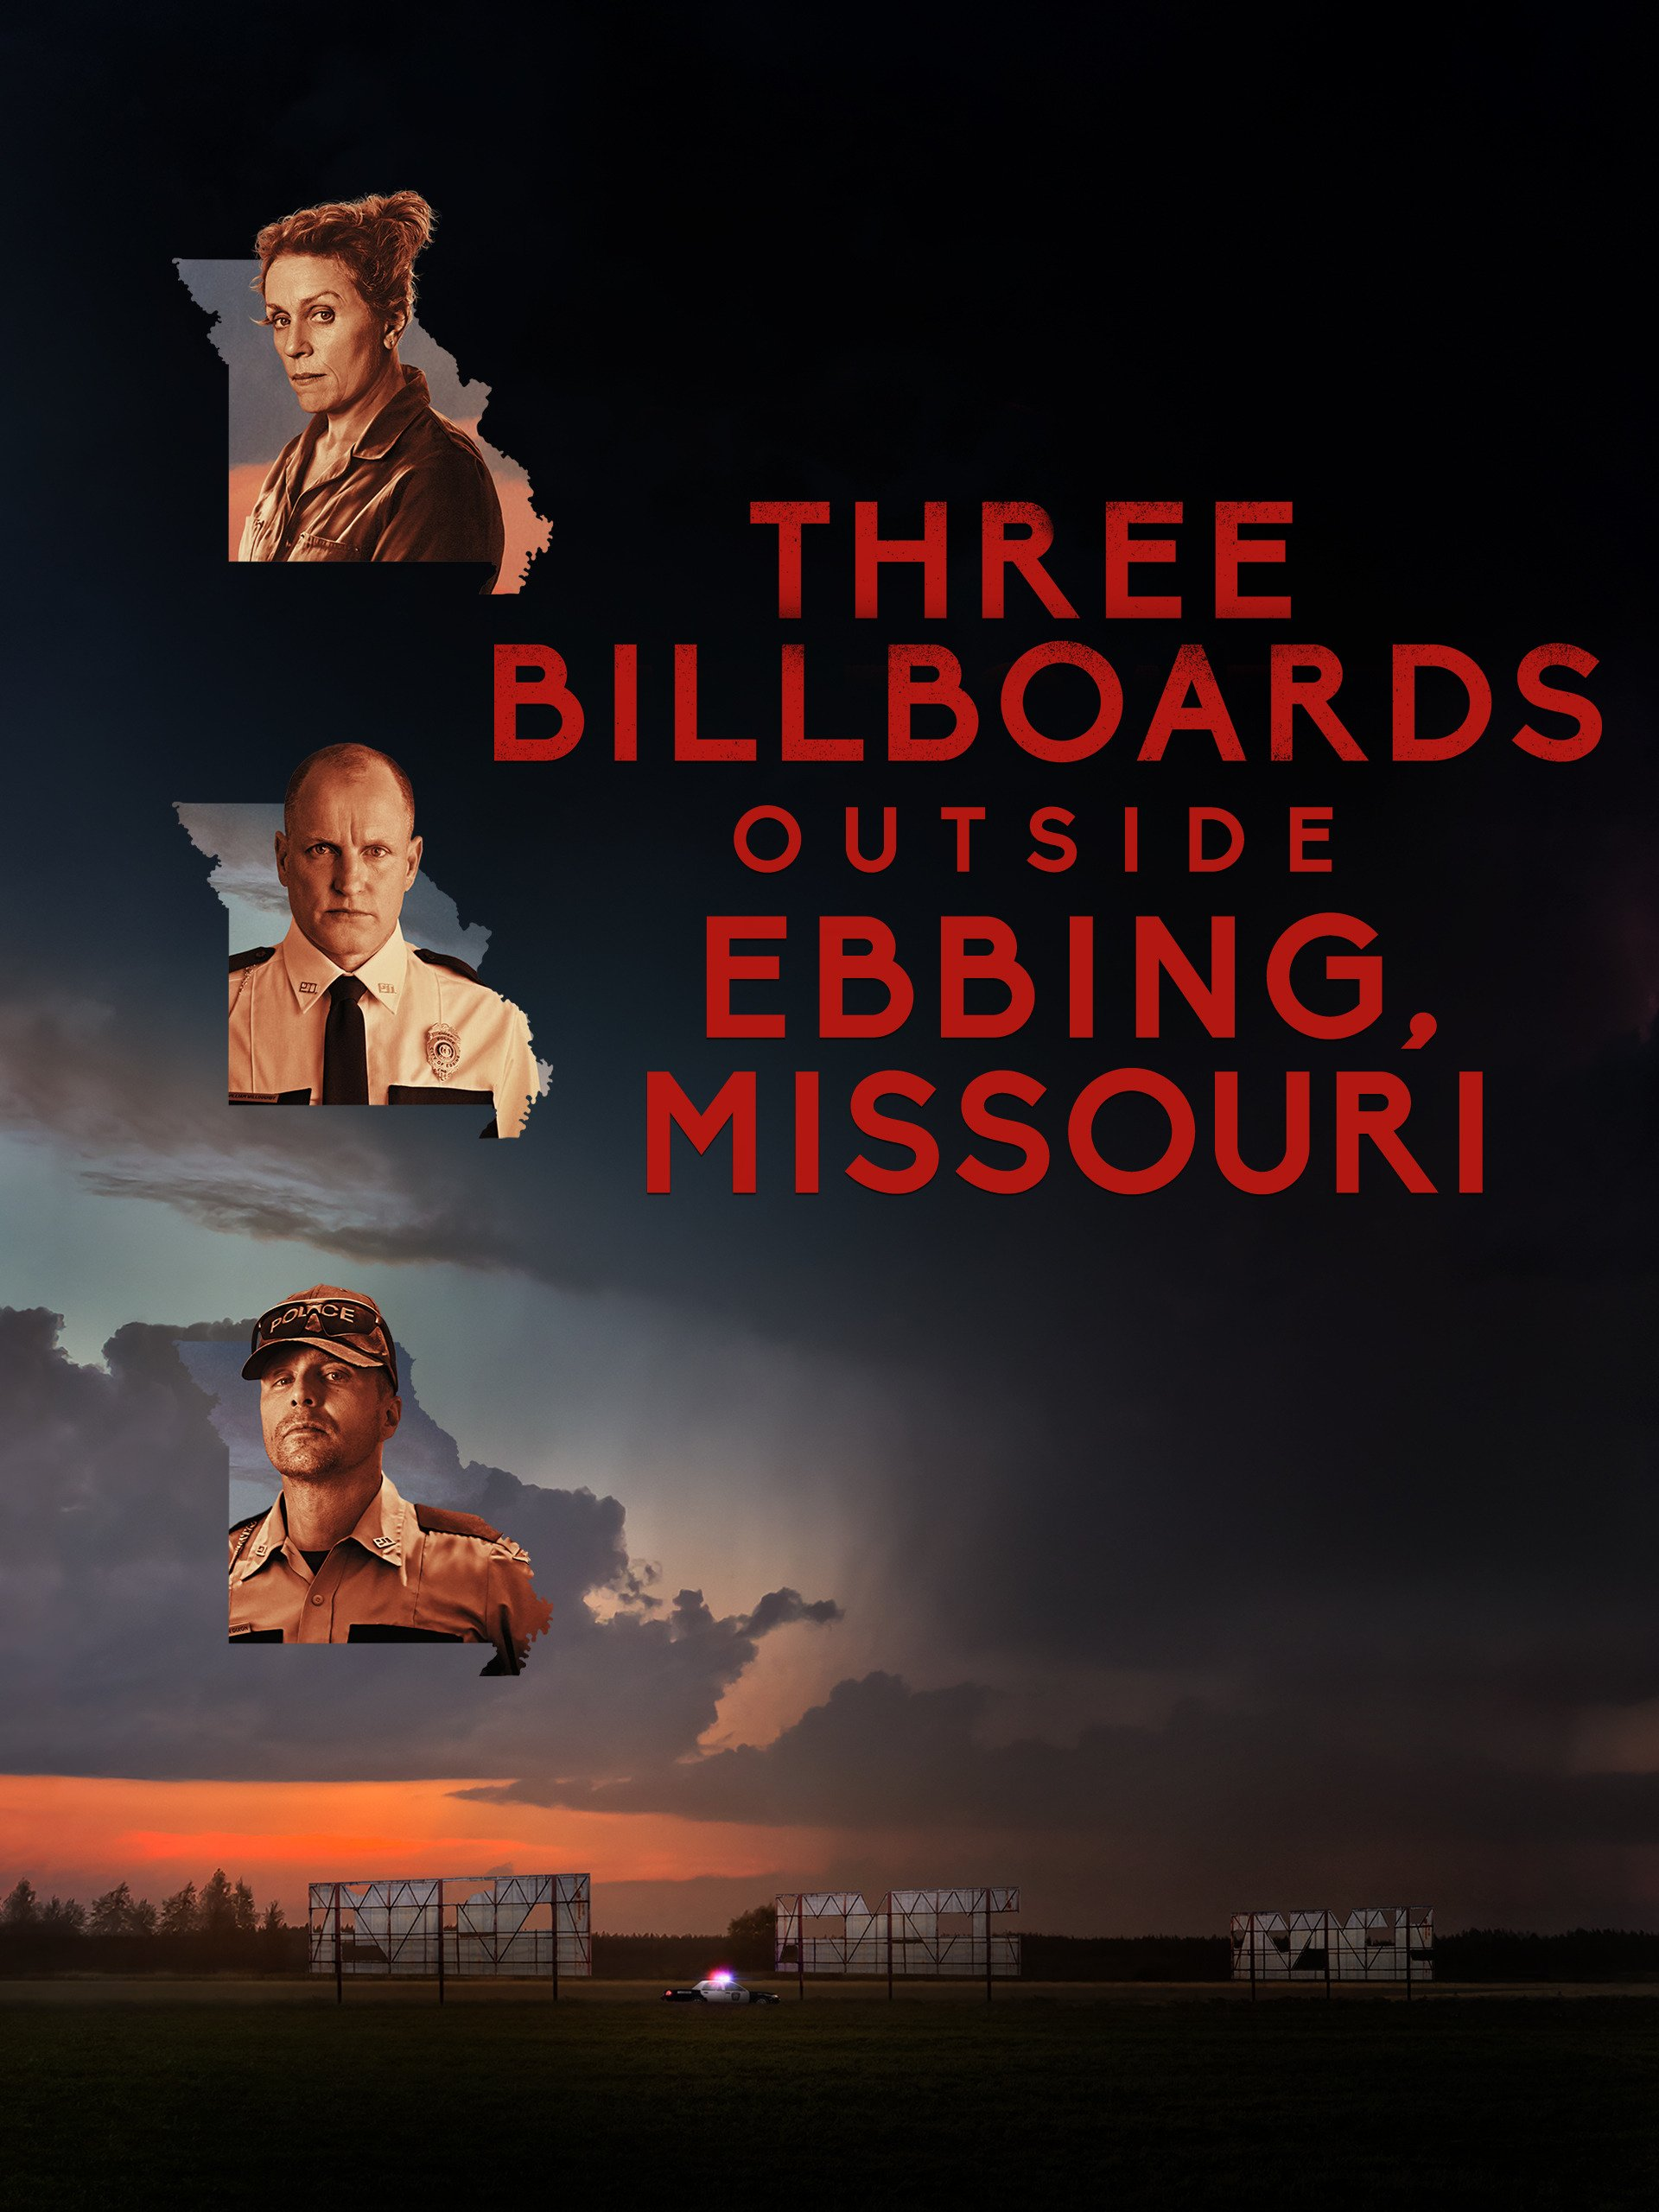 دانلود فیلم Three Billboards Outside Ebbing Missouri 2017